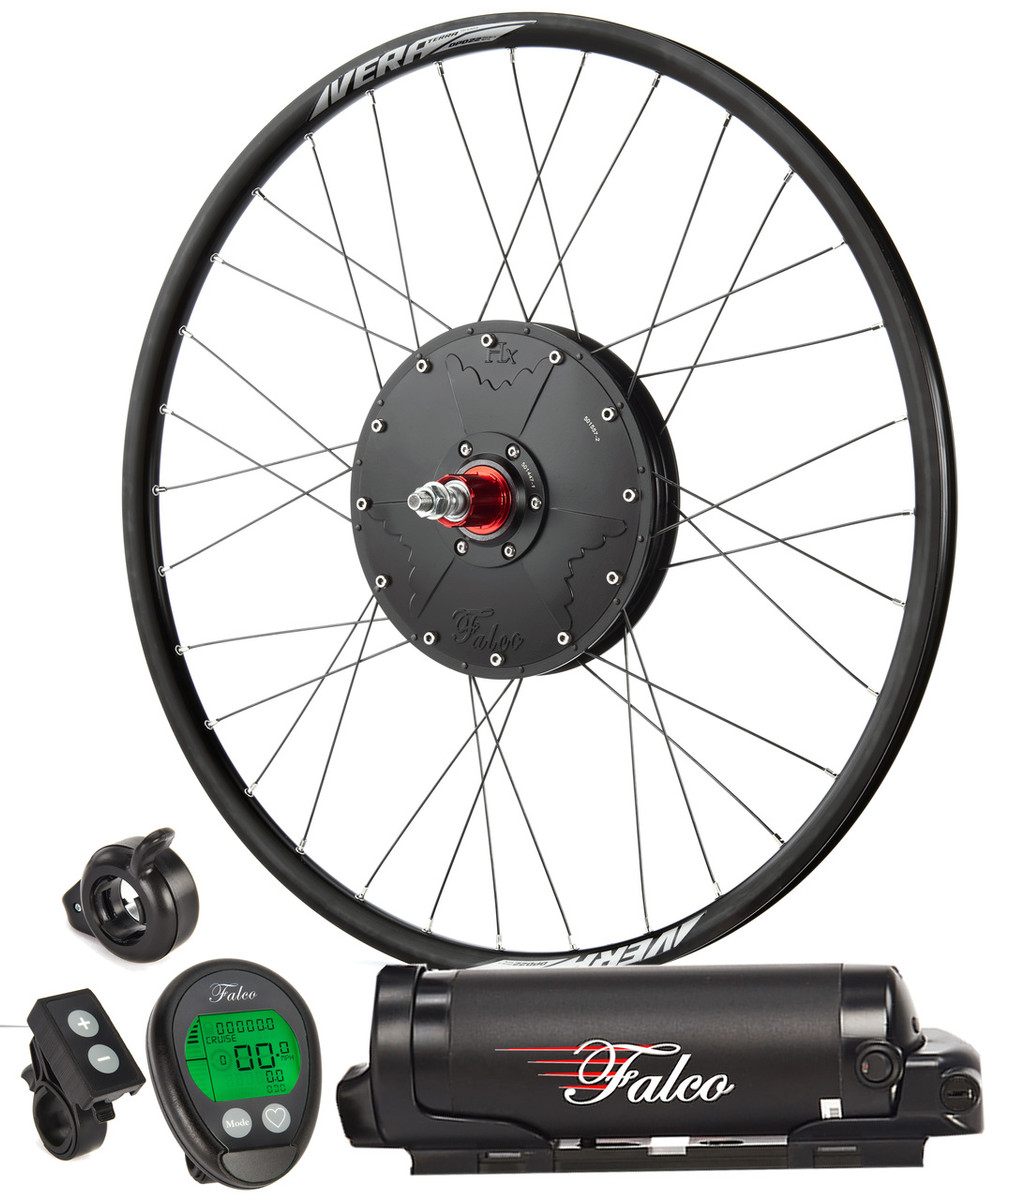 Falco e5.3 System (2021 Model) - 500W/400Wh includes fully built wheel, battery console, plus minus, throttle etc.